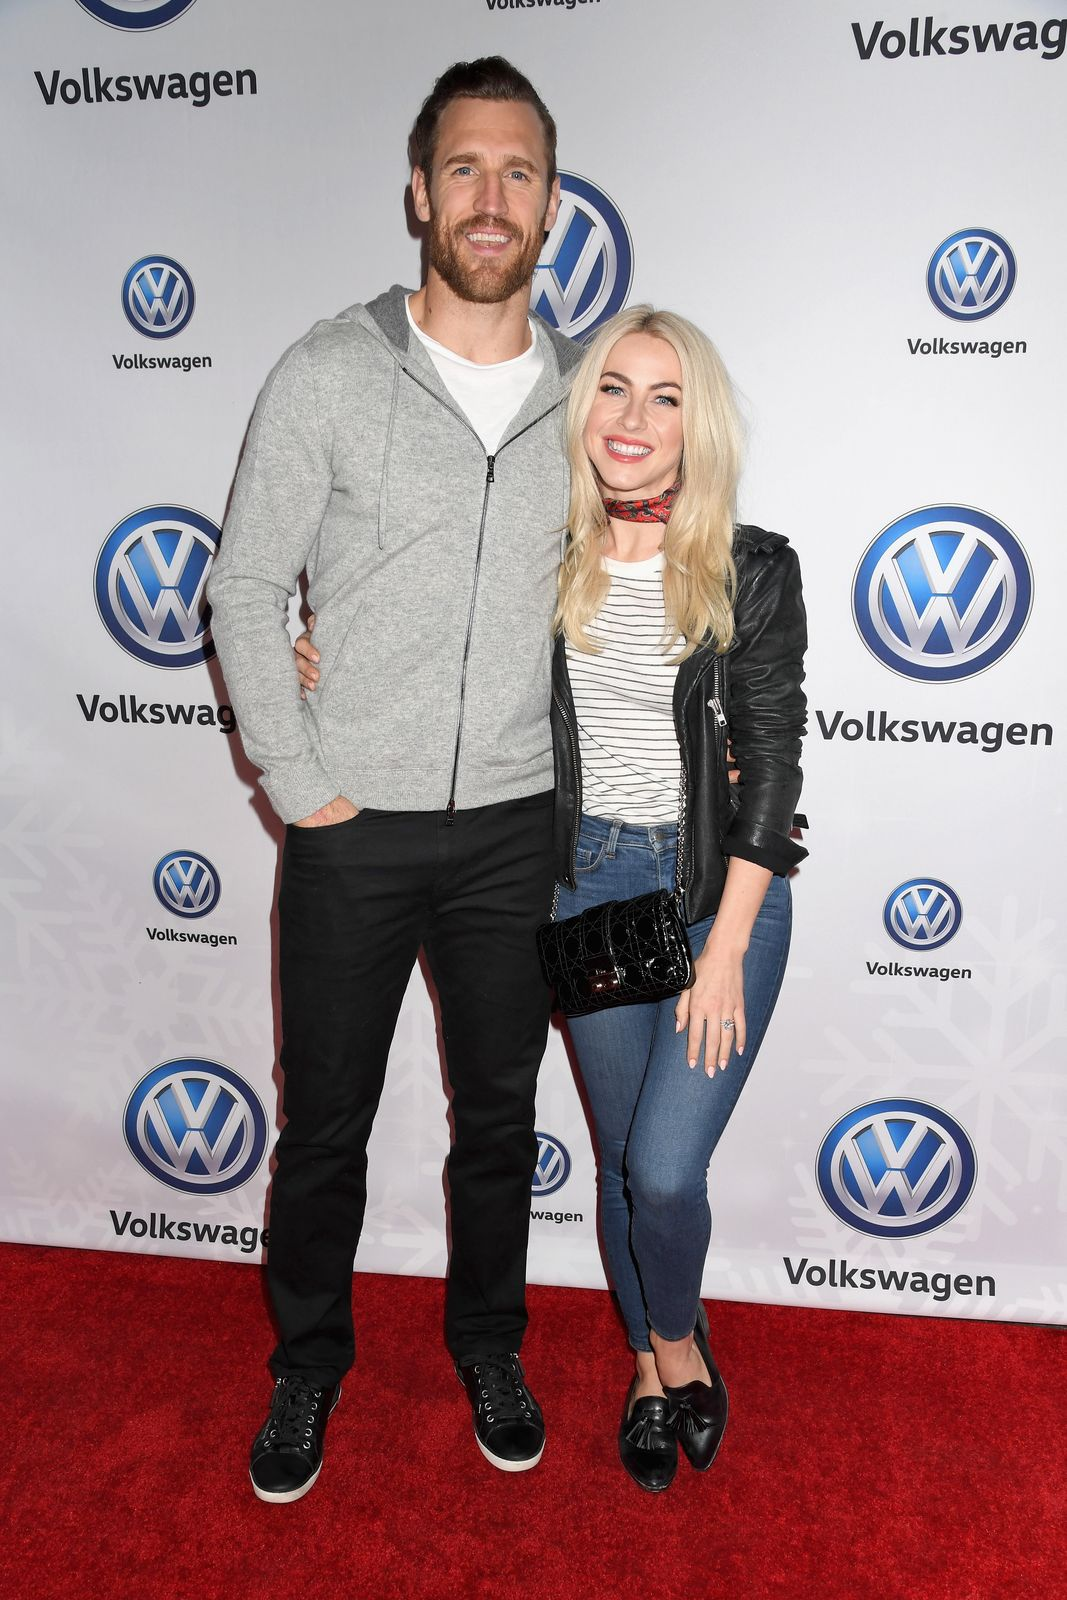 Brooks Laich and Julianne Hough at the Volkswagen Holiday Drive-In event in Los Angeles, California on December 16, 2017 | Photo: Jennifer Graylock/Getty Images